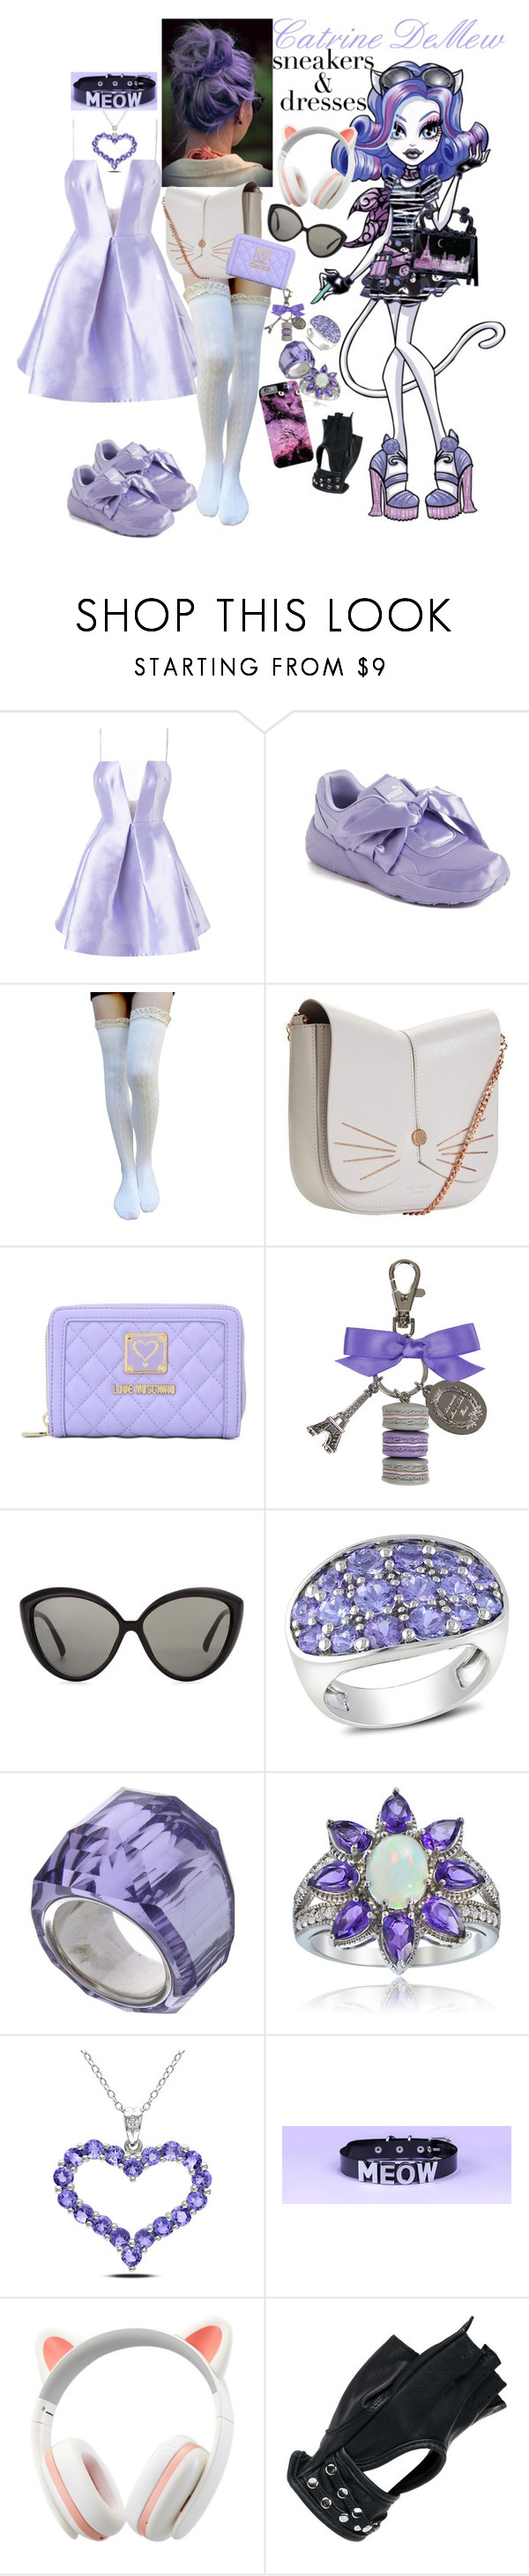 """Catrine DeMew's Dress and Sneakers Look"" by musicallymasked ❤ liked on Polyvore featuring Alex Perry, Puma, Ted Baker, Love Moschino, Ladurée, Linda Farrow, Catherine Catherine Malandrino, Swarovski, Glitzy Rocks and Miadora"